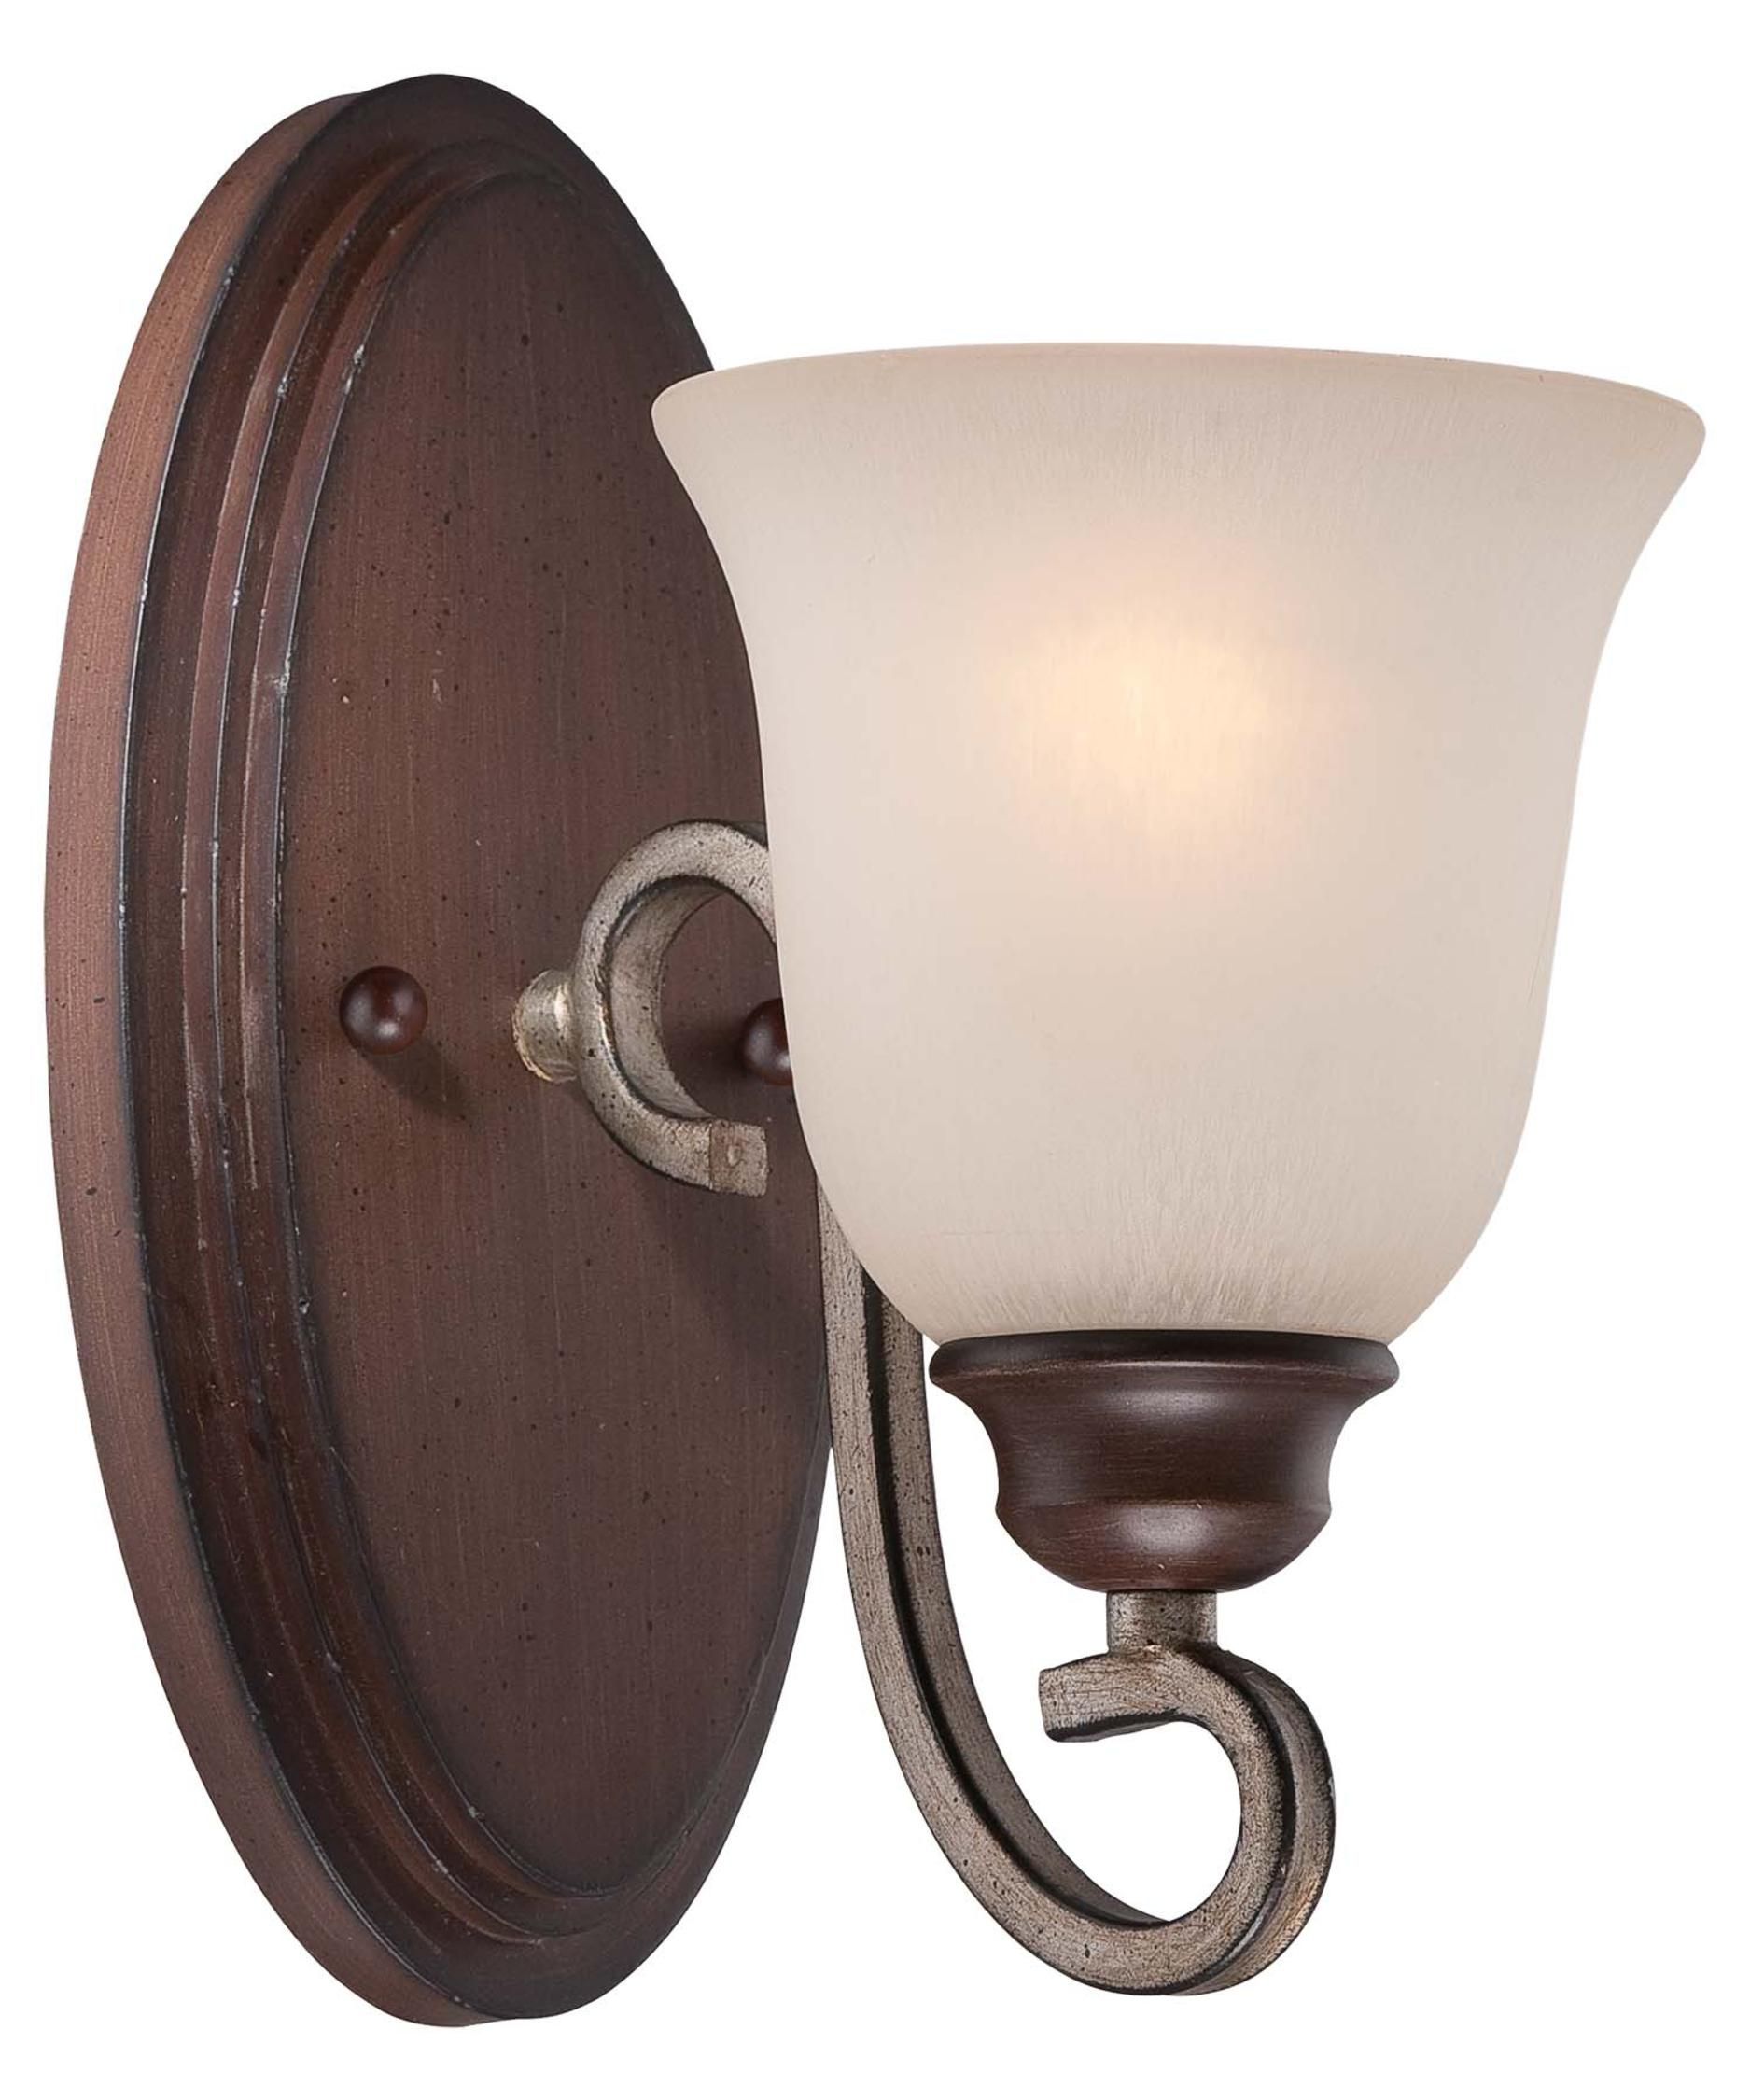 of full vanity mirrors with sconces over lighting kichler bronze outdoor mirror sconce for elk size wall indoor bathroom above sale lights